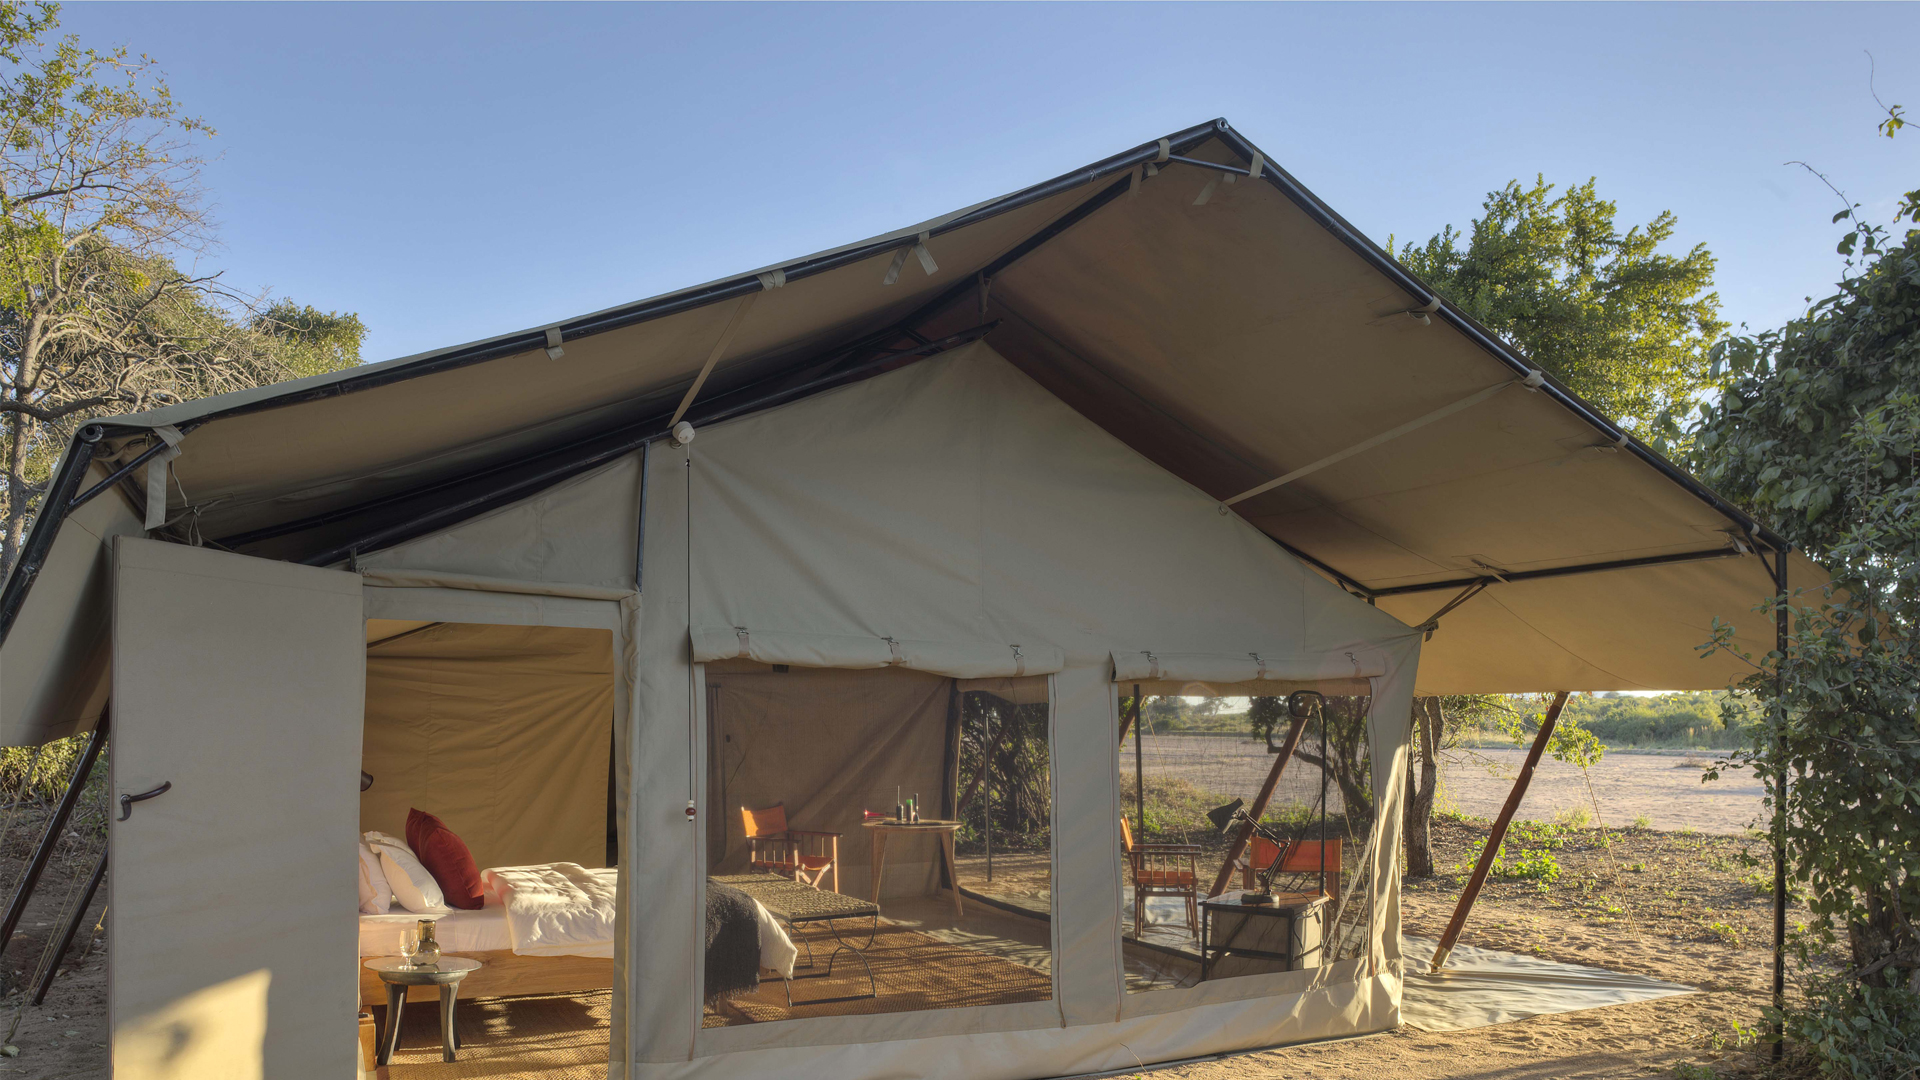 Main---Kwihala-Tented-Camp-header